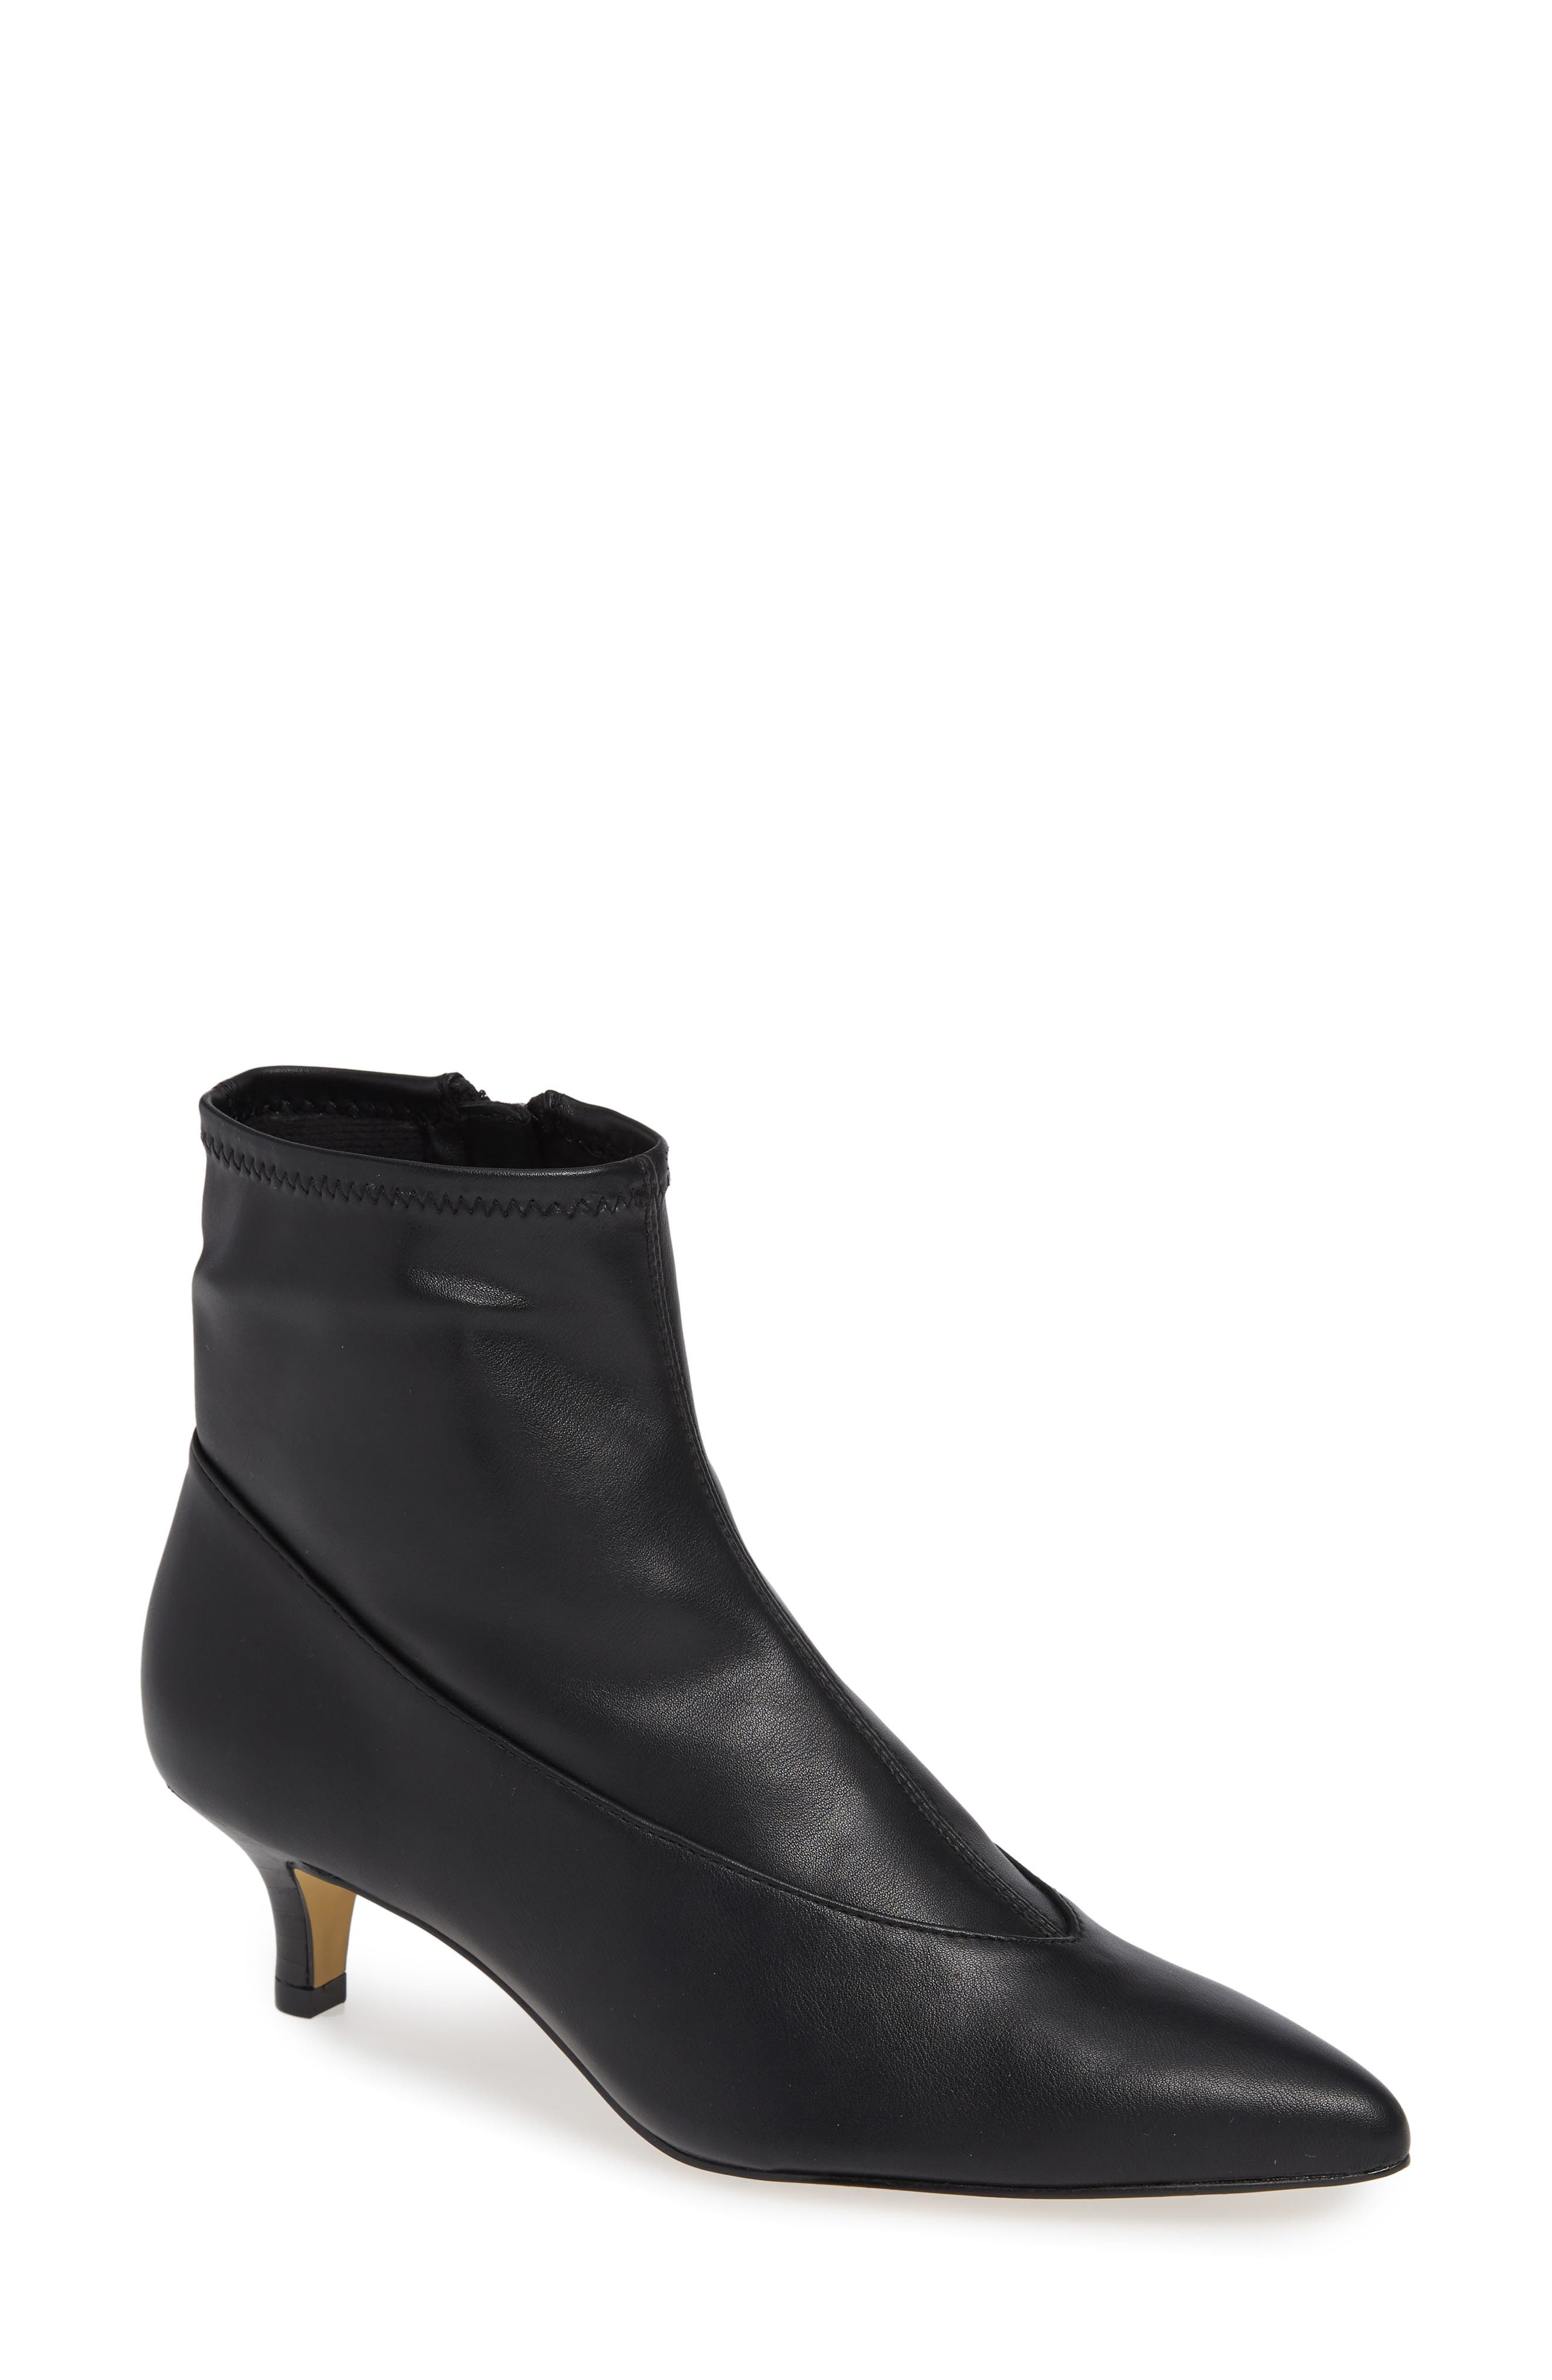 Stephanie II Stretch Bootie,                             Main thumbnail 1, color,                             BLACK